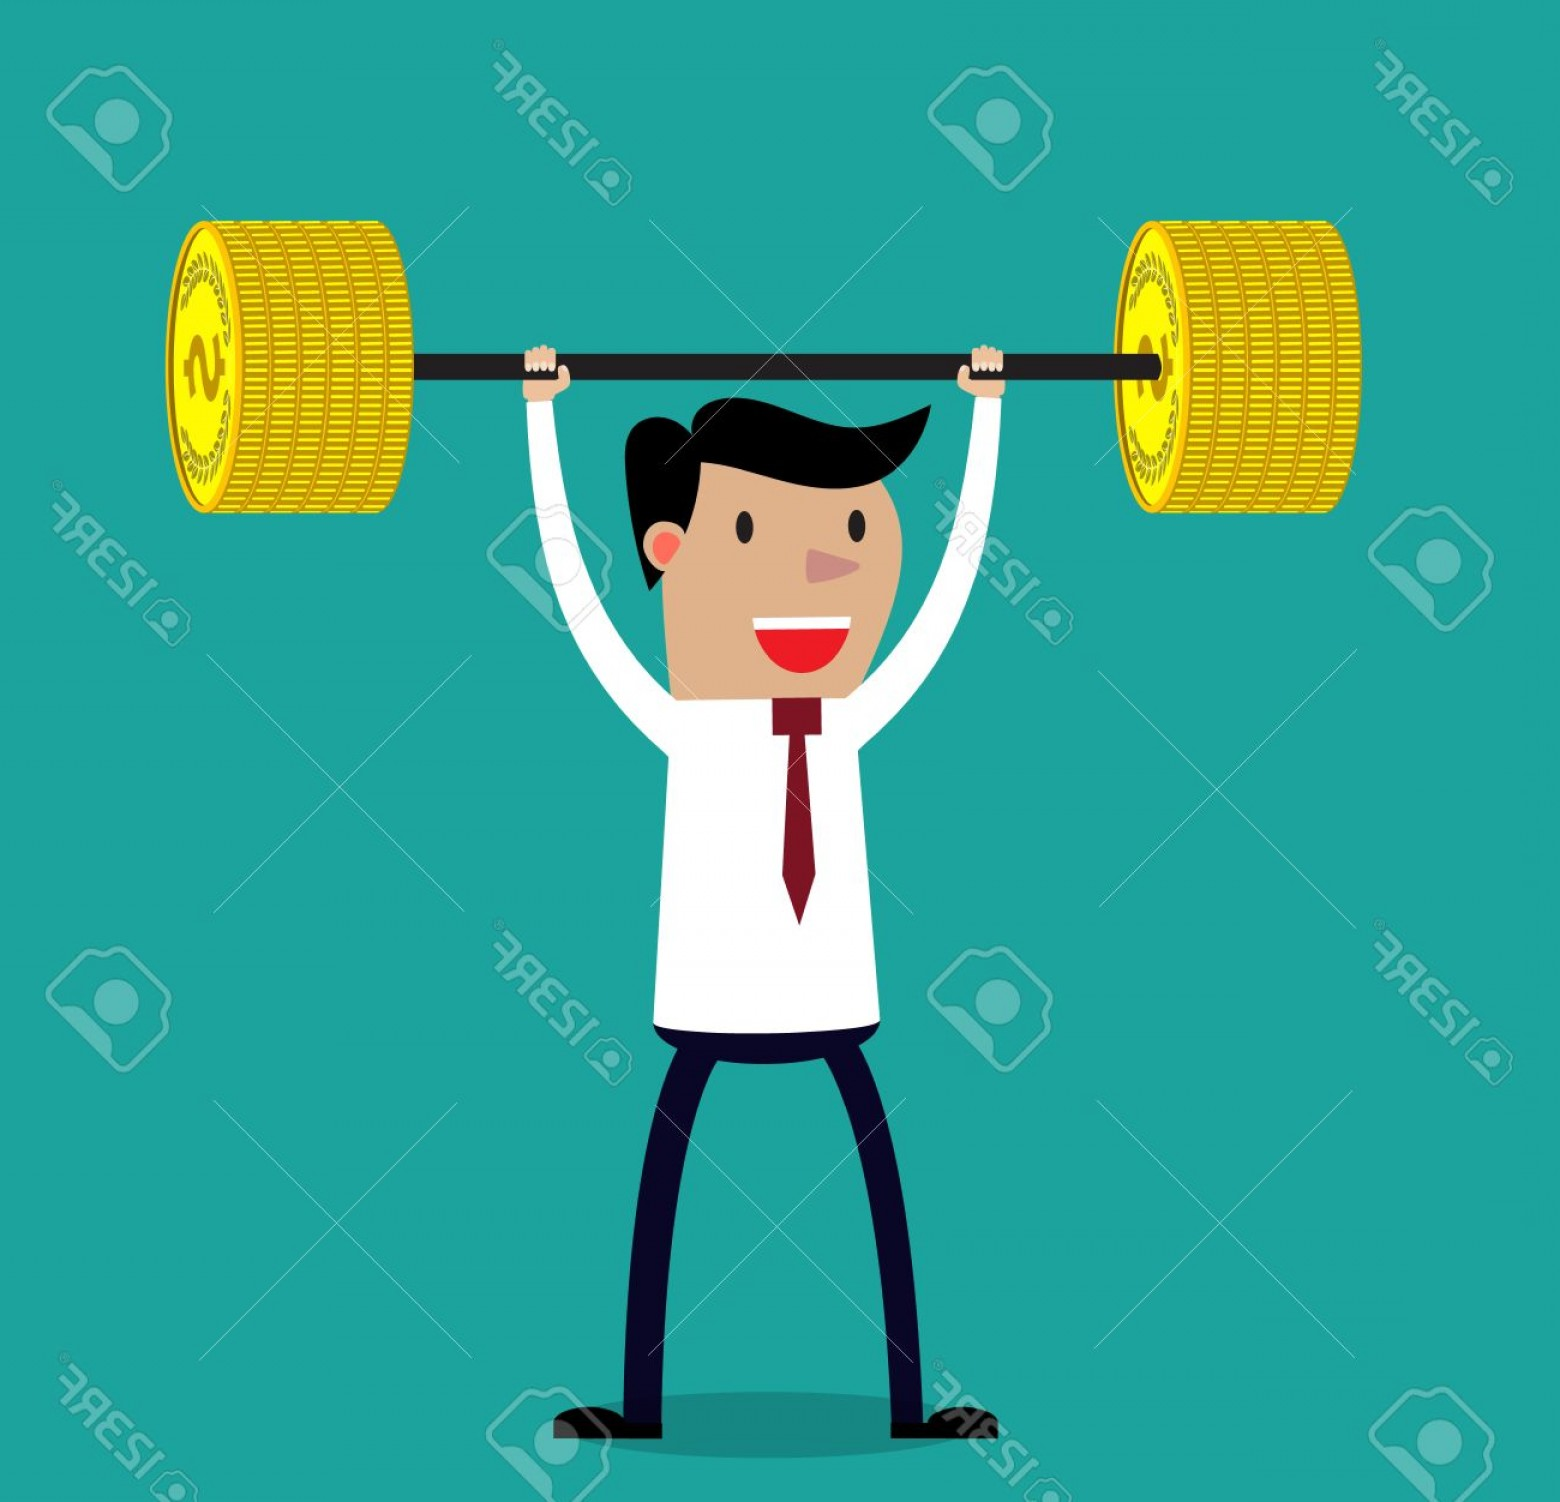 Bumper Barbell Vector: Photostock Vector Business Executive Power Lifting Barbell Made Of Golden Coin Vector Illustration For Business Financ